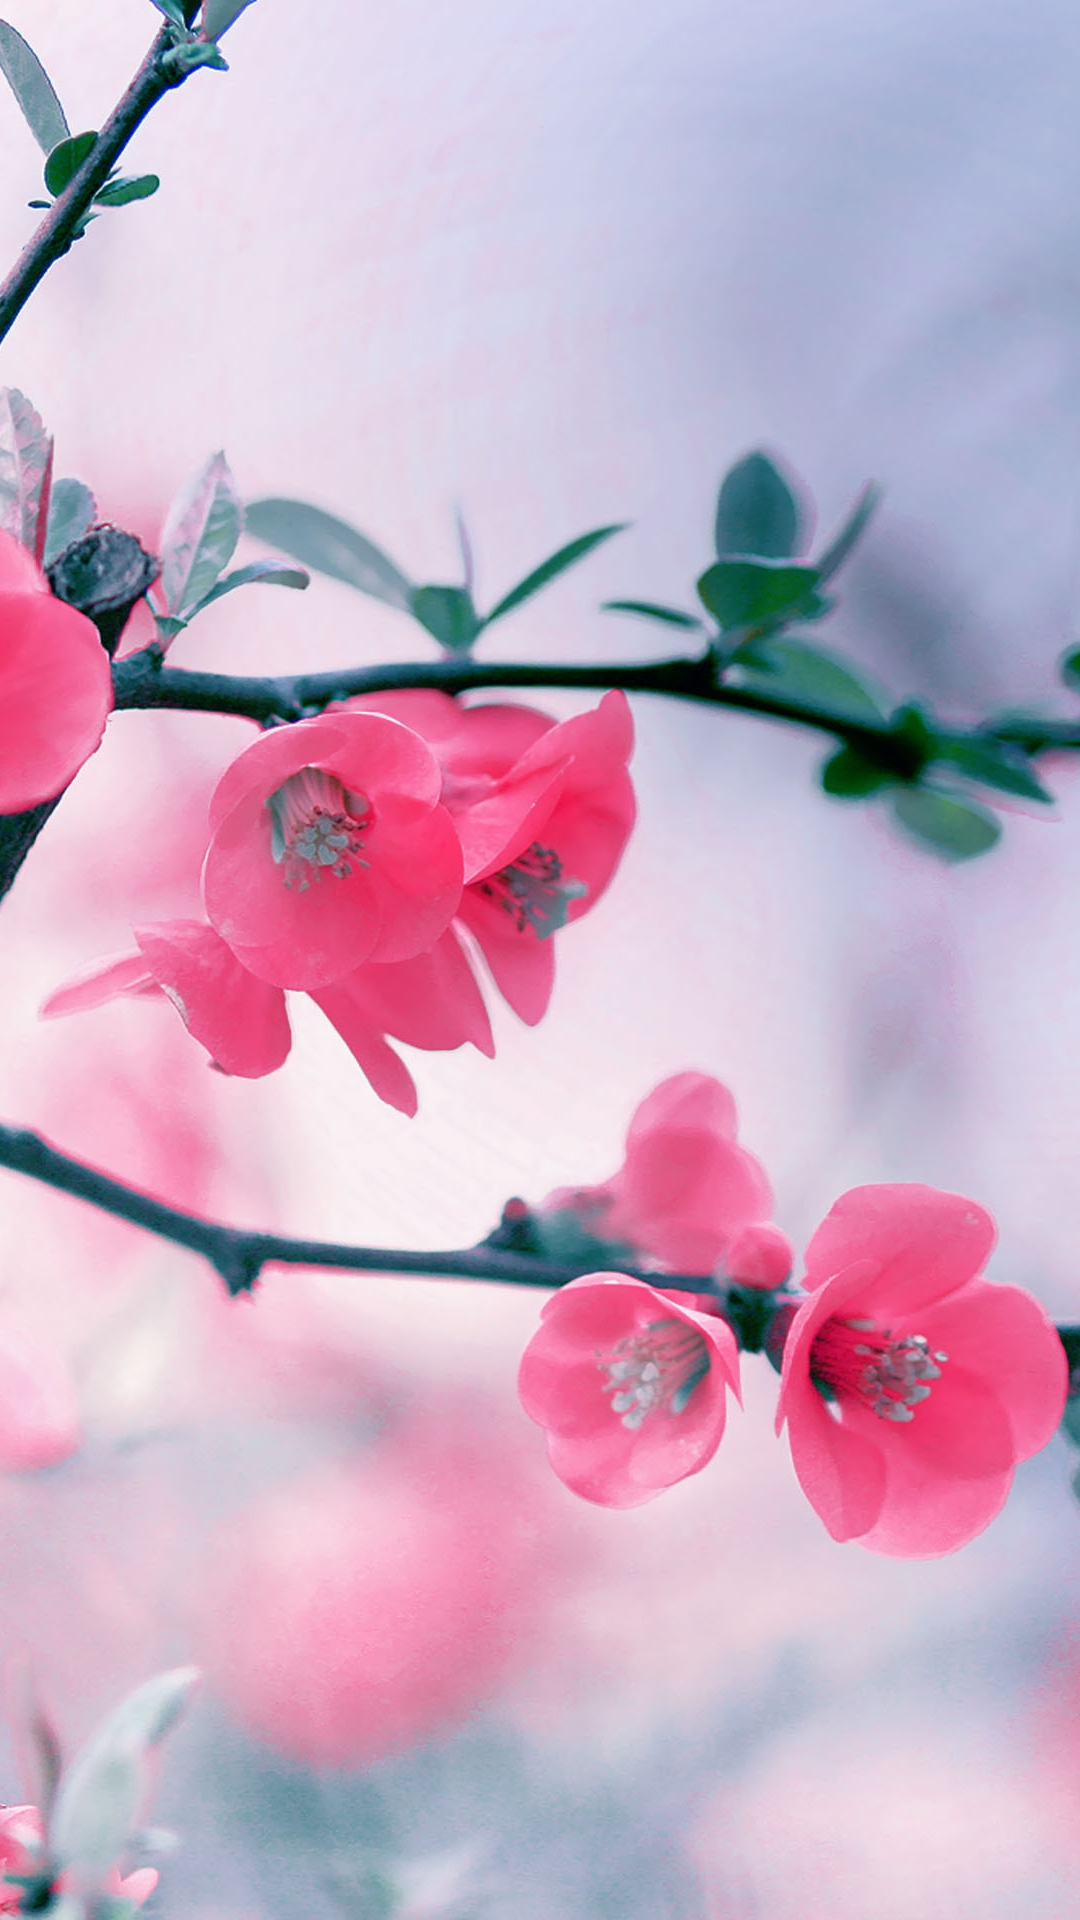 Pink blossom flowers best htc one m9 wallpapers for download pink blossom flowers voltagebd Choice Image